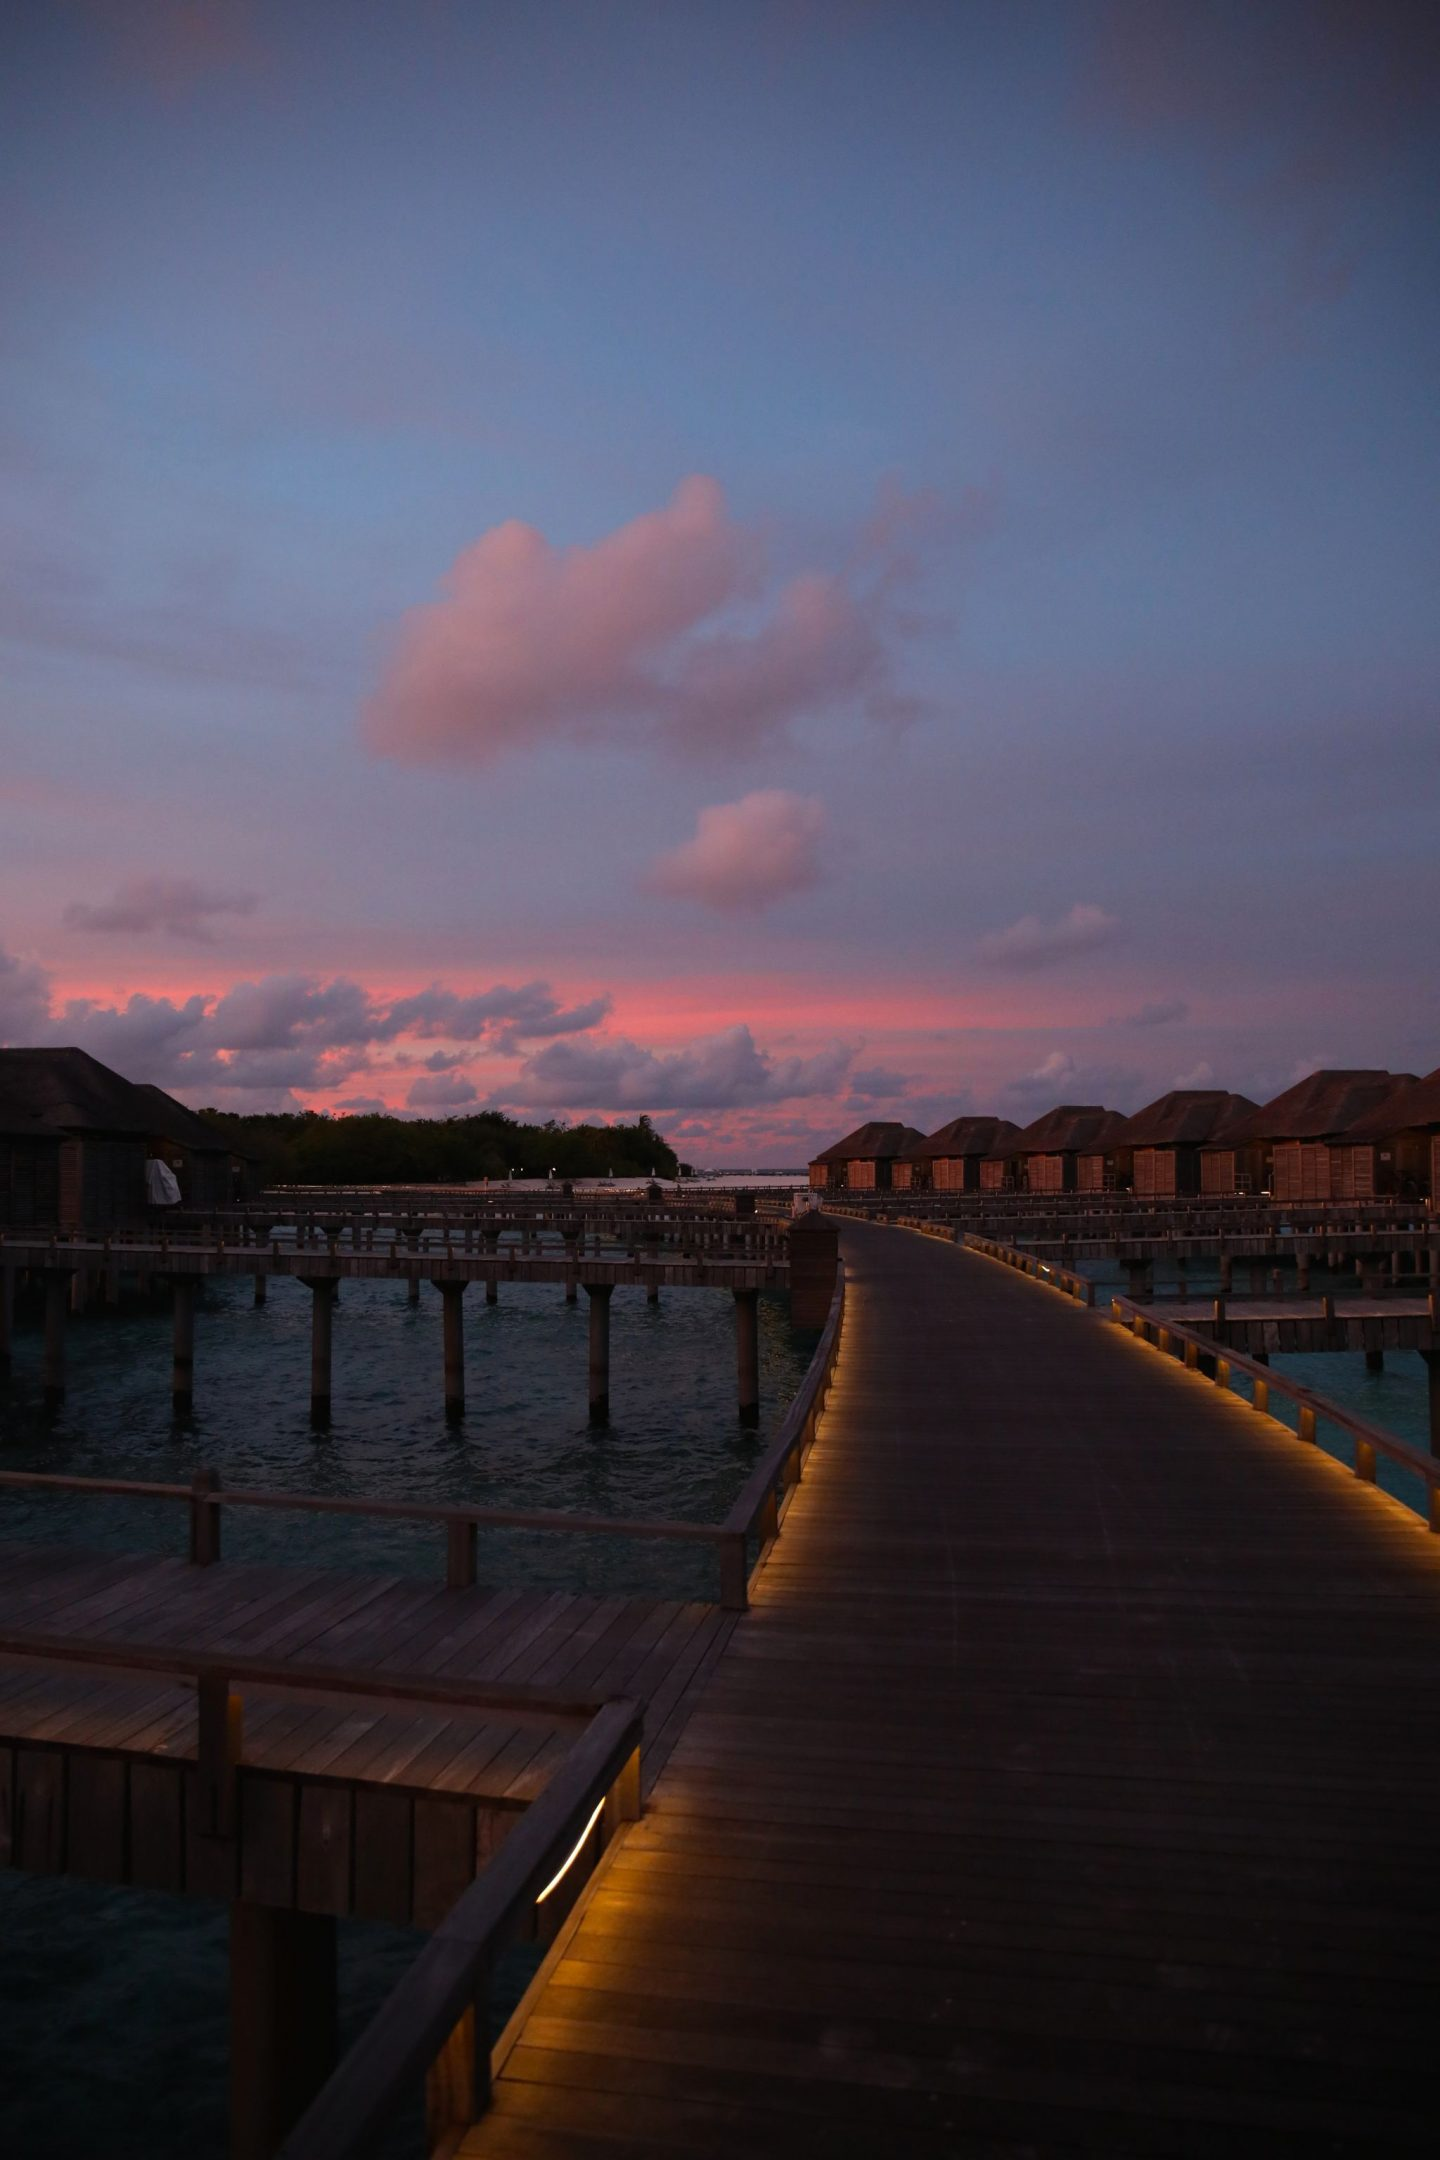 Ja Manafaru in The Maldives Over The Water Bungalow, Katie Heath, Kalanchoe